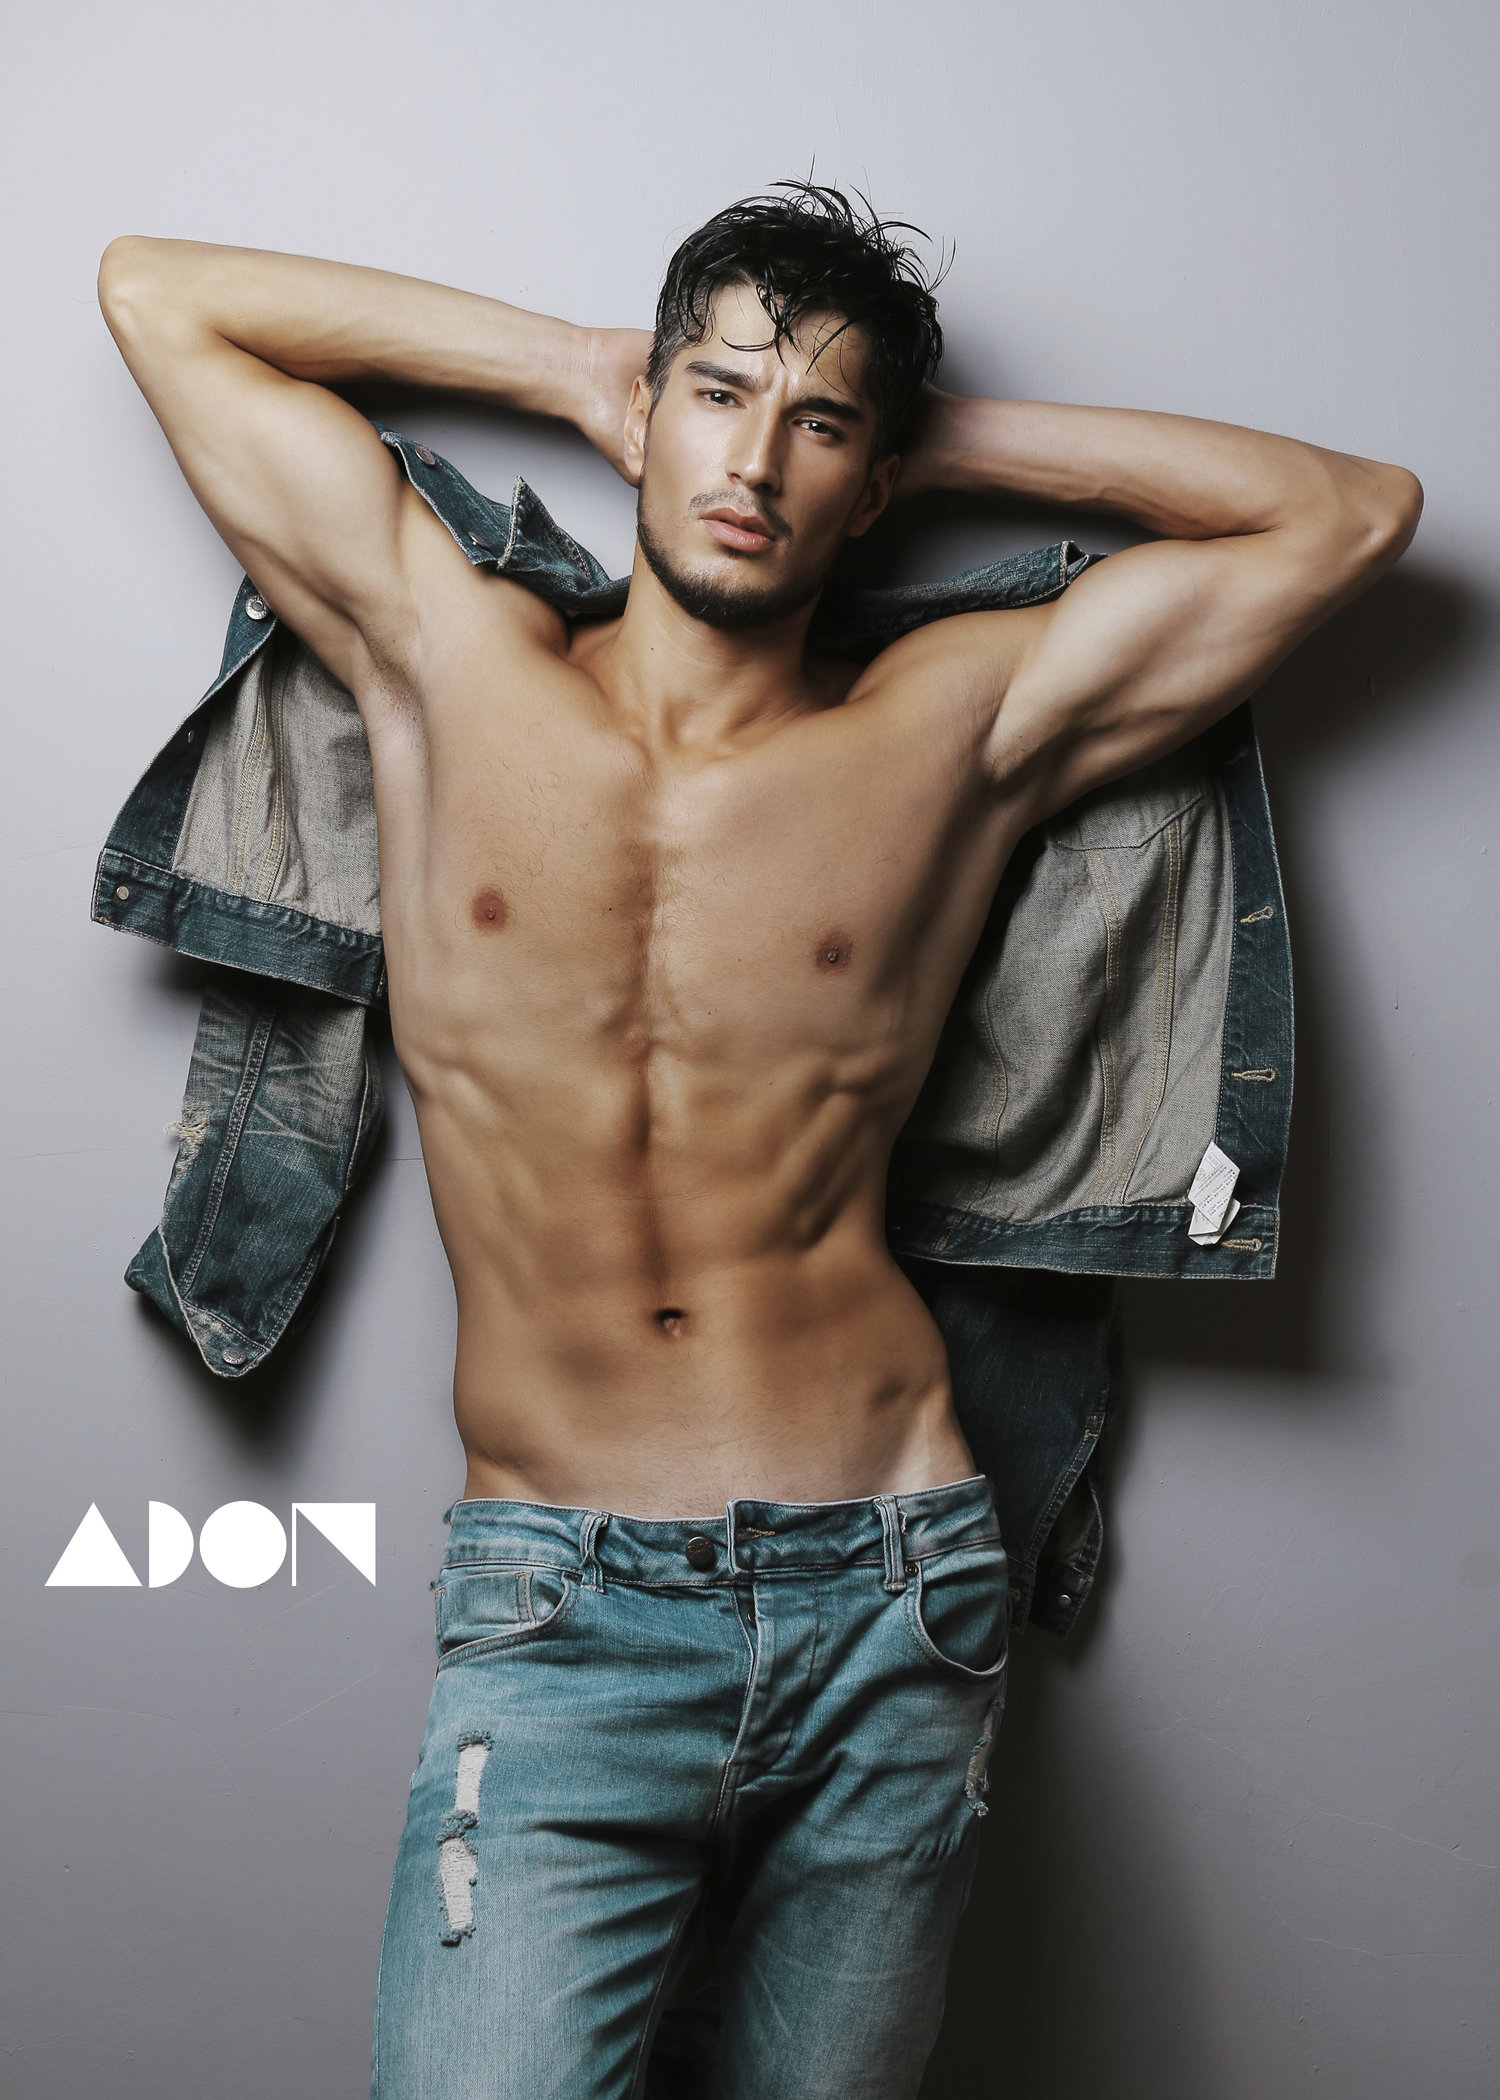 Adon Exclusive: Model Shakhboz Makhmudov By Sofyan Hendik